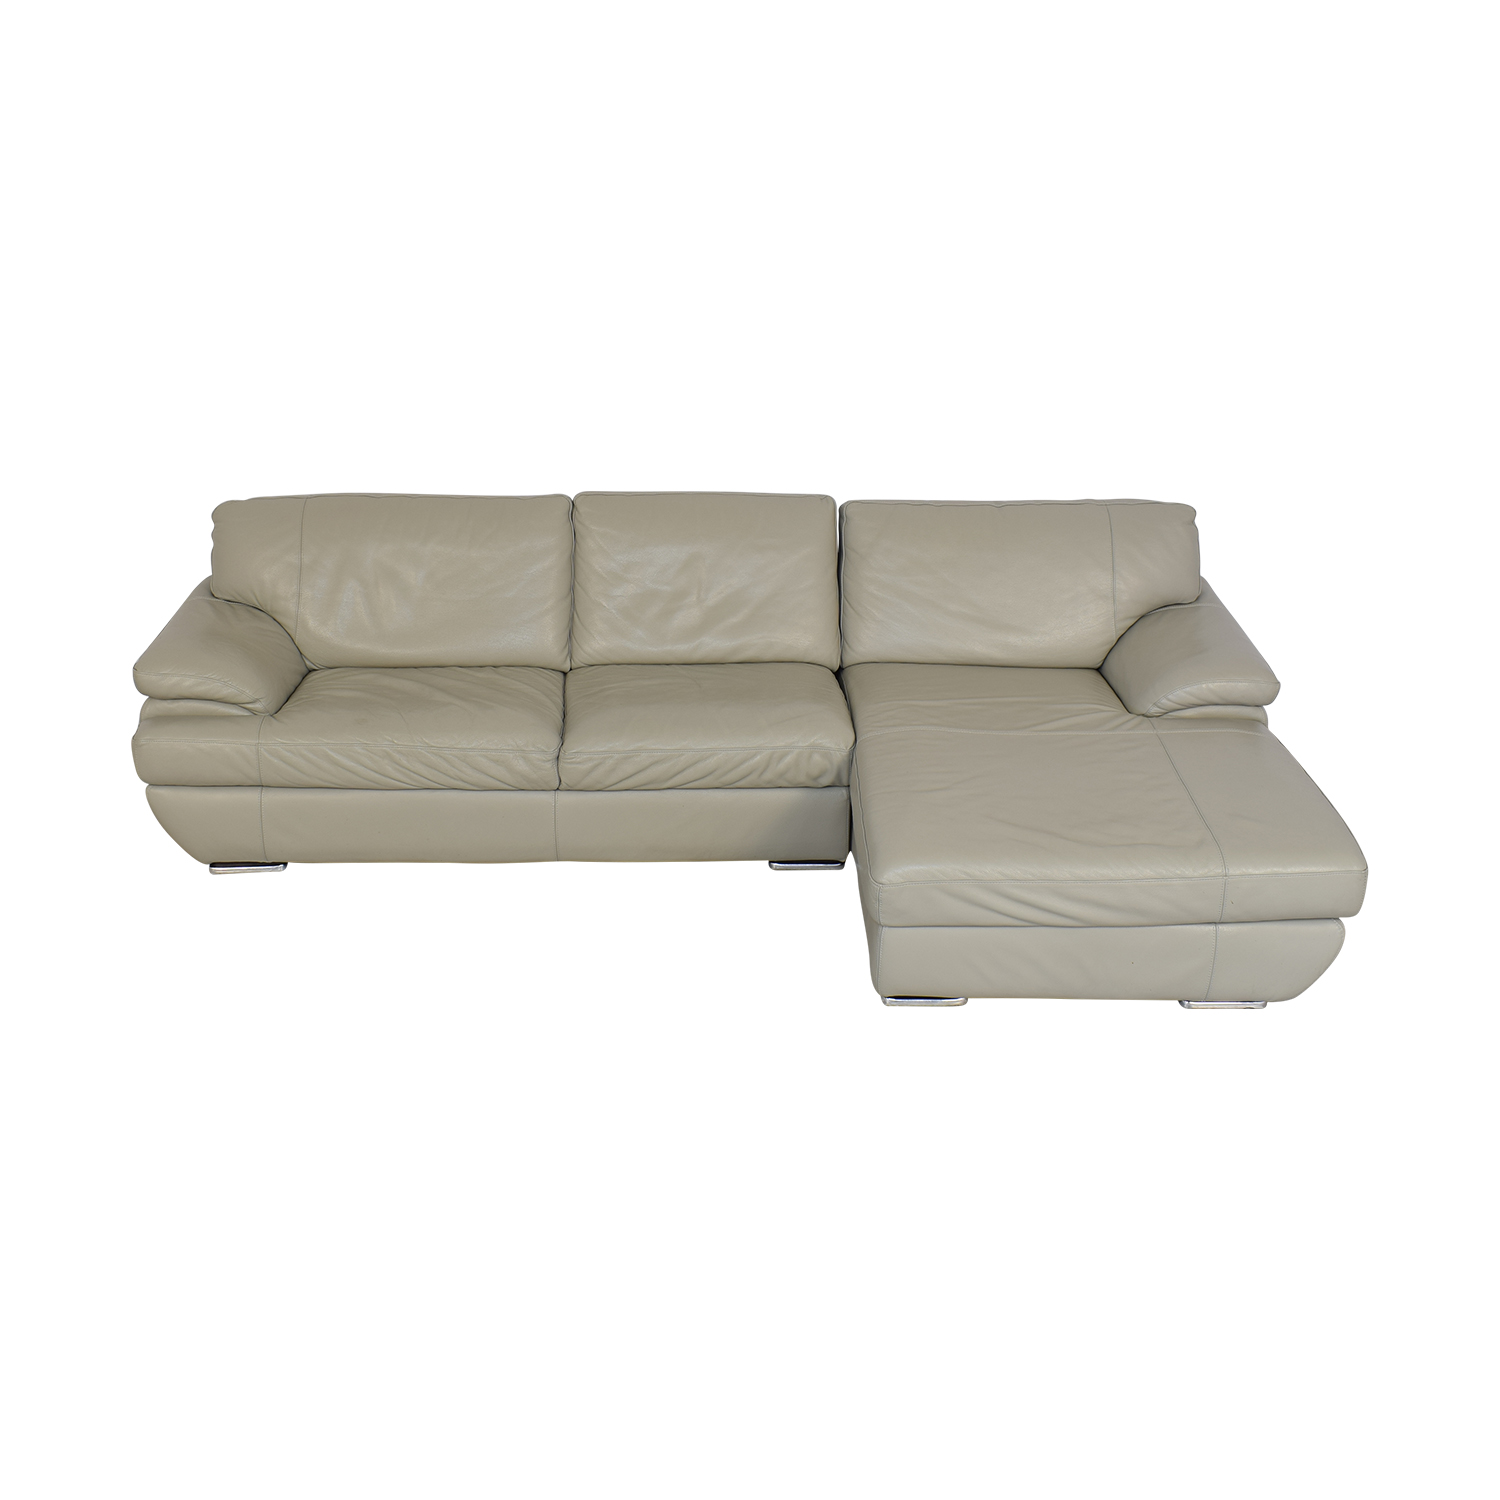 Chateau d'Ax Sectional Sofa with Chaise / Sectionals